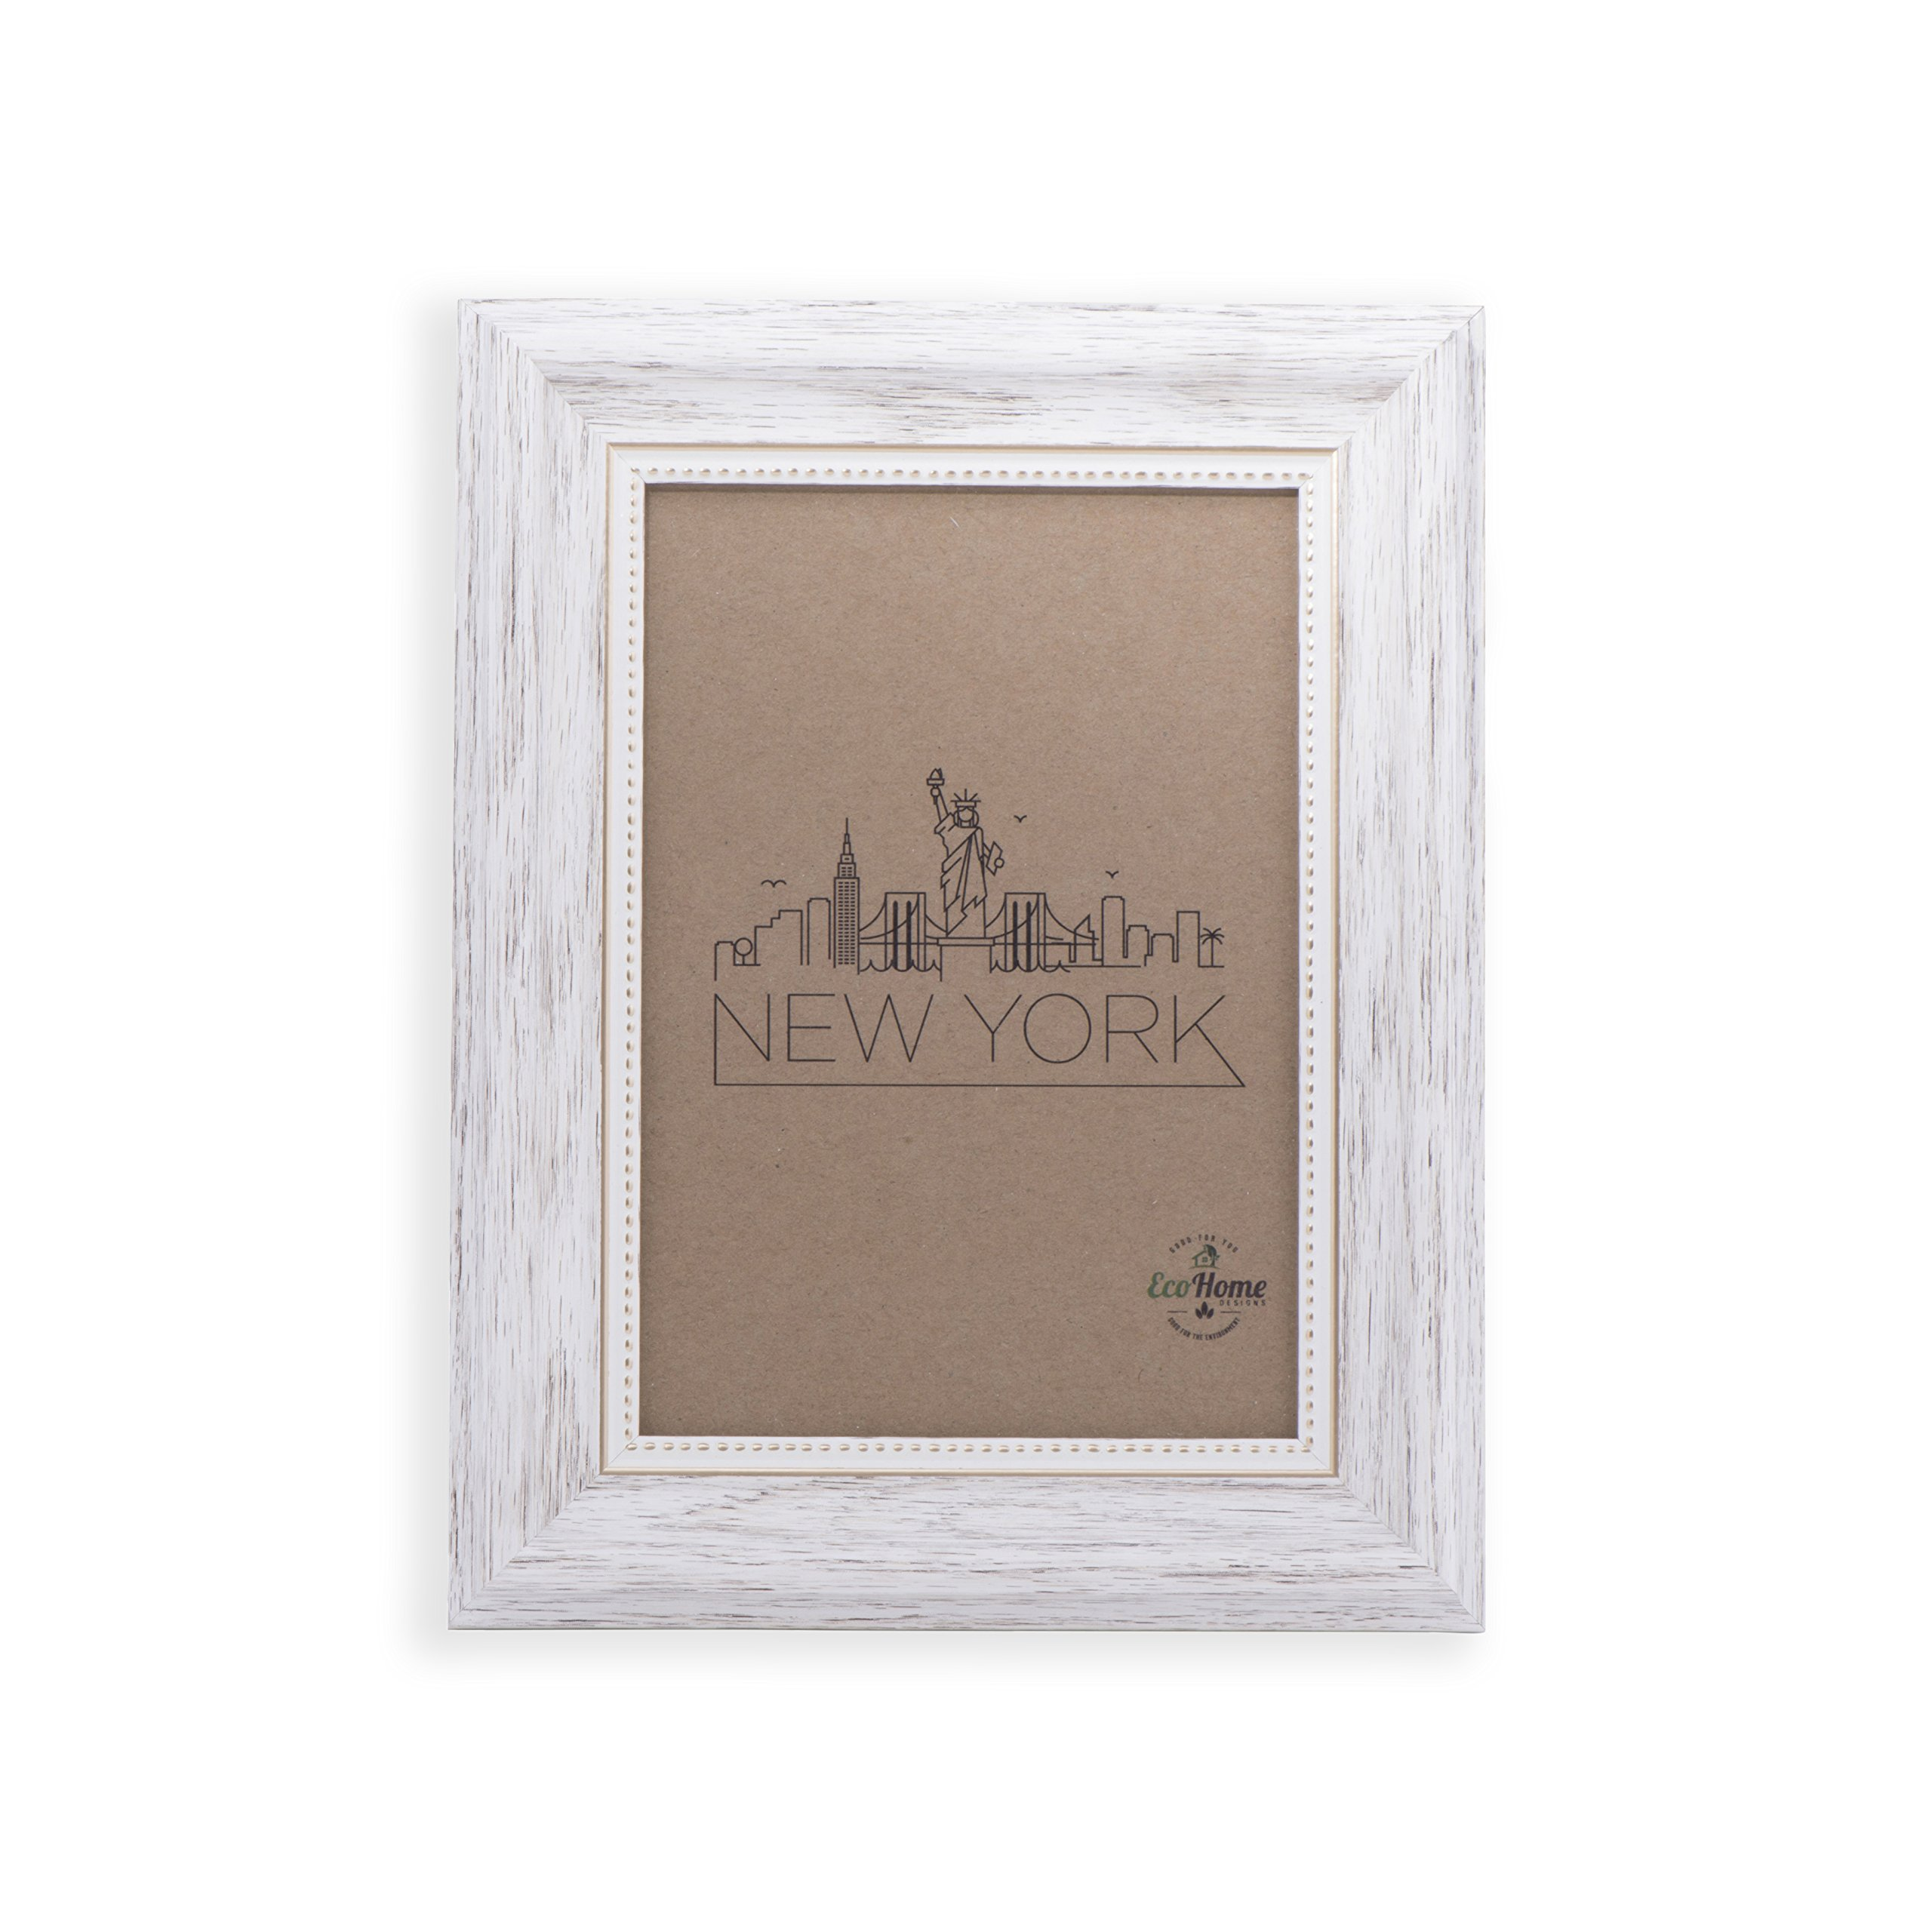 5x7 Picture Frame White/Gold - Mount/Desktop Display, Frames by EcoHome by EcoHome